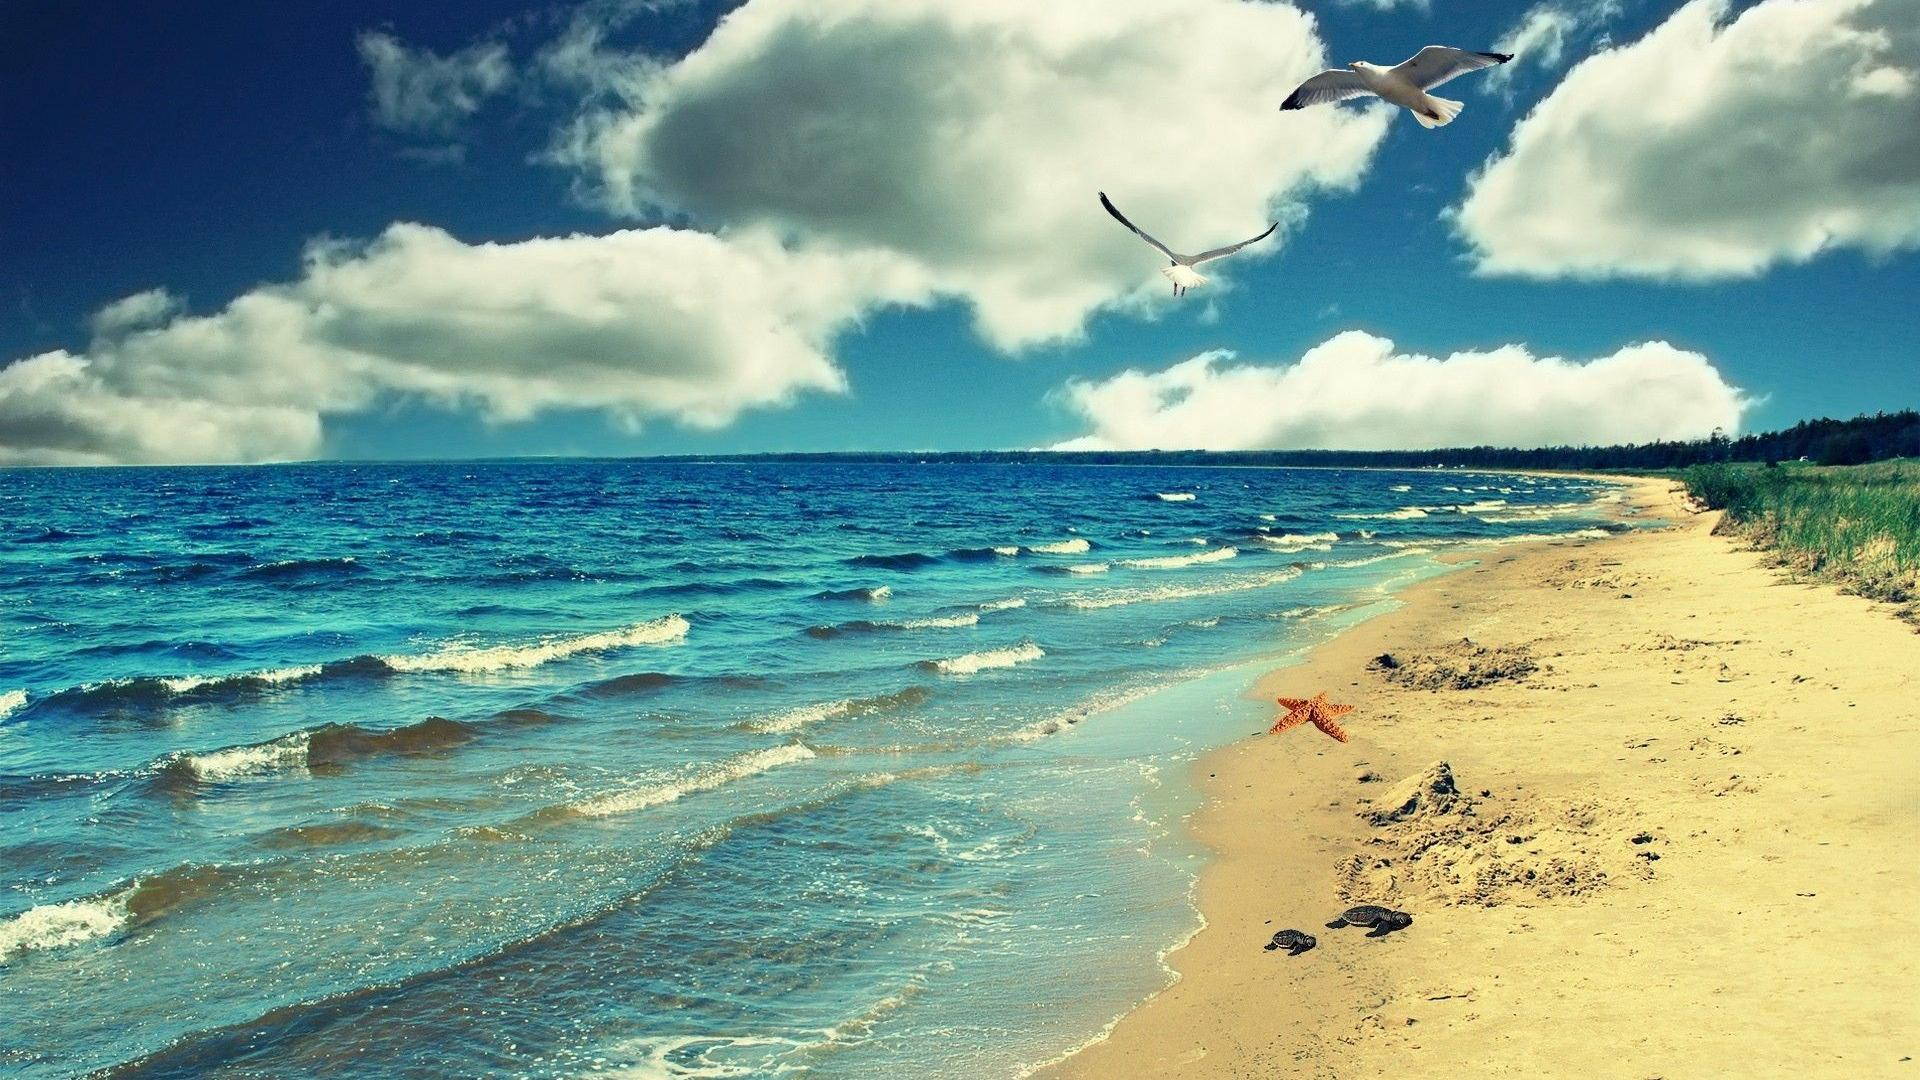 Hd beach wallpapers 1080p with 1920 1080 pixel wide - Beach hd wallpapers 1080p ...